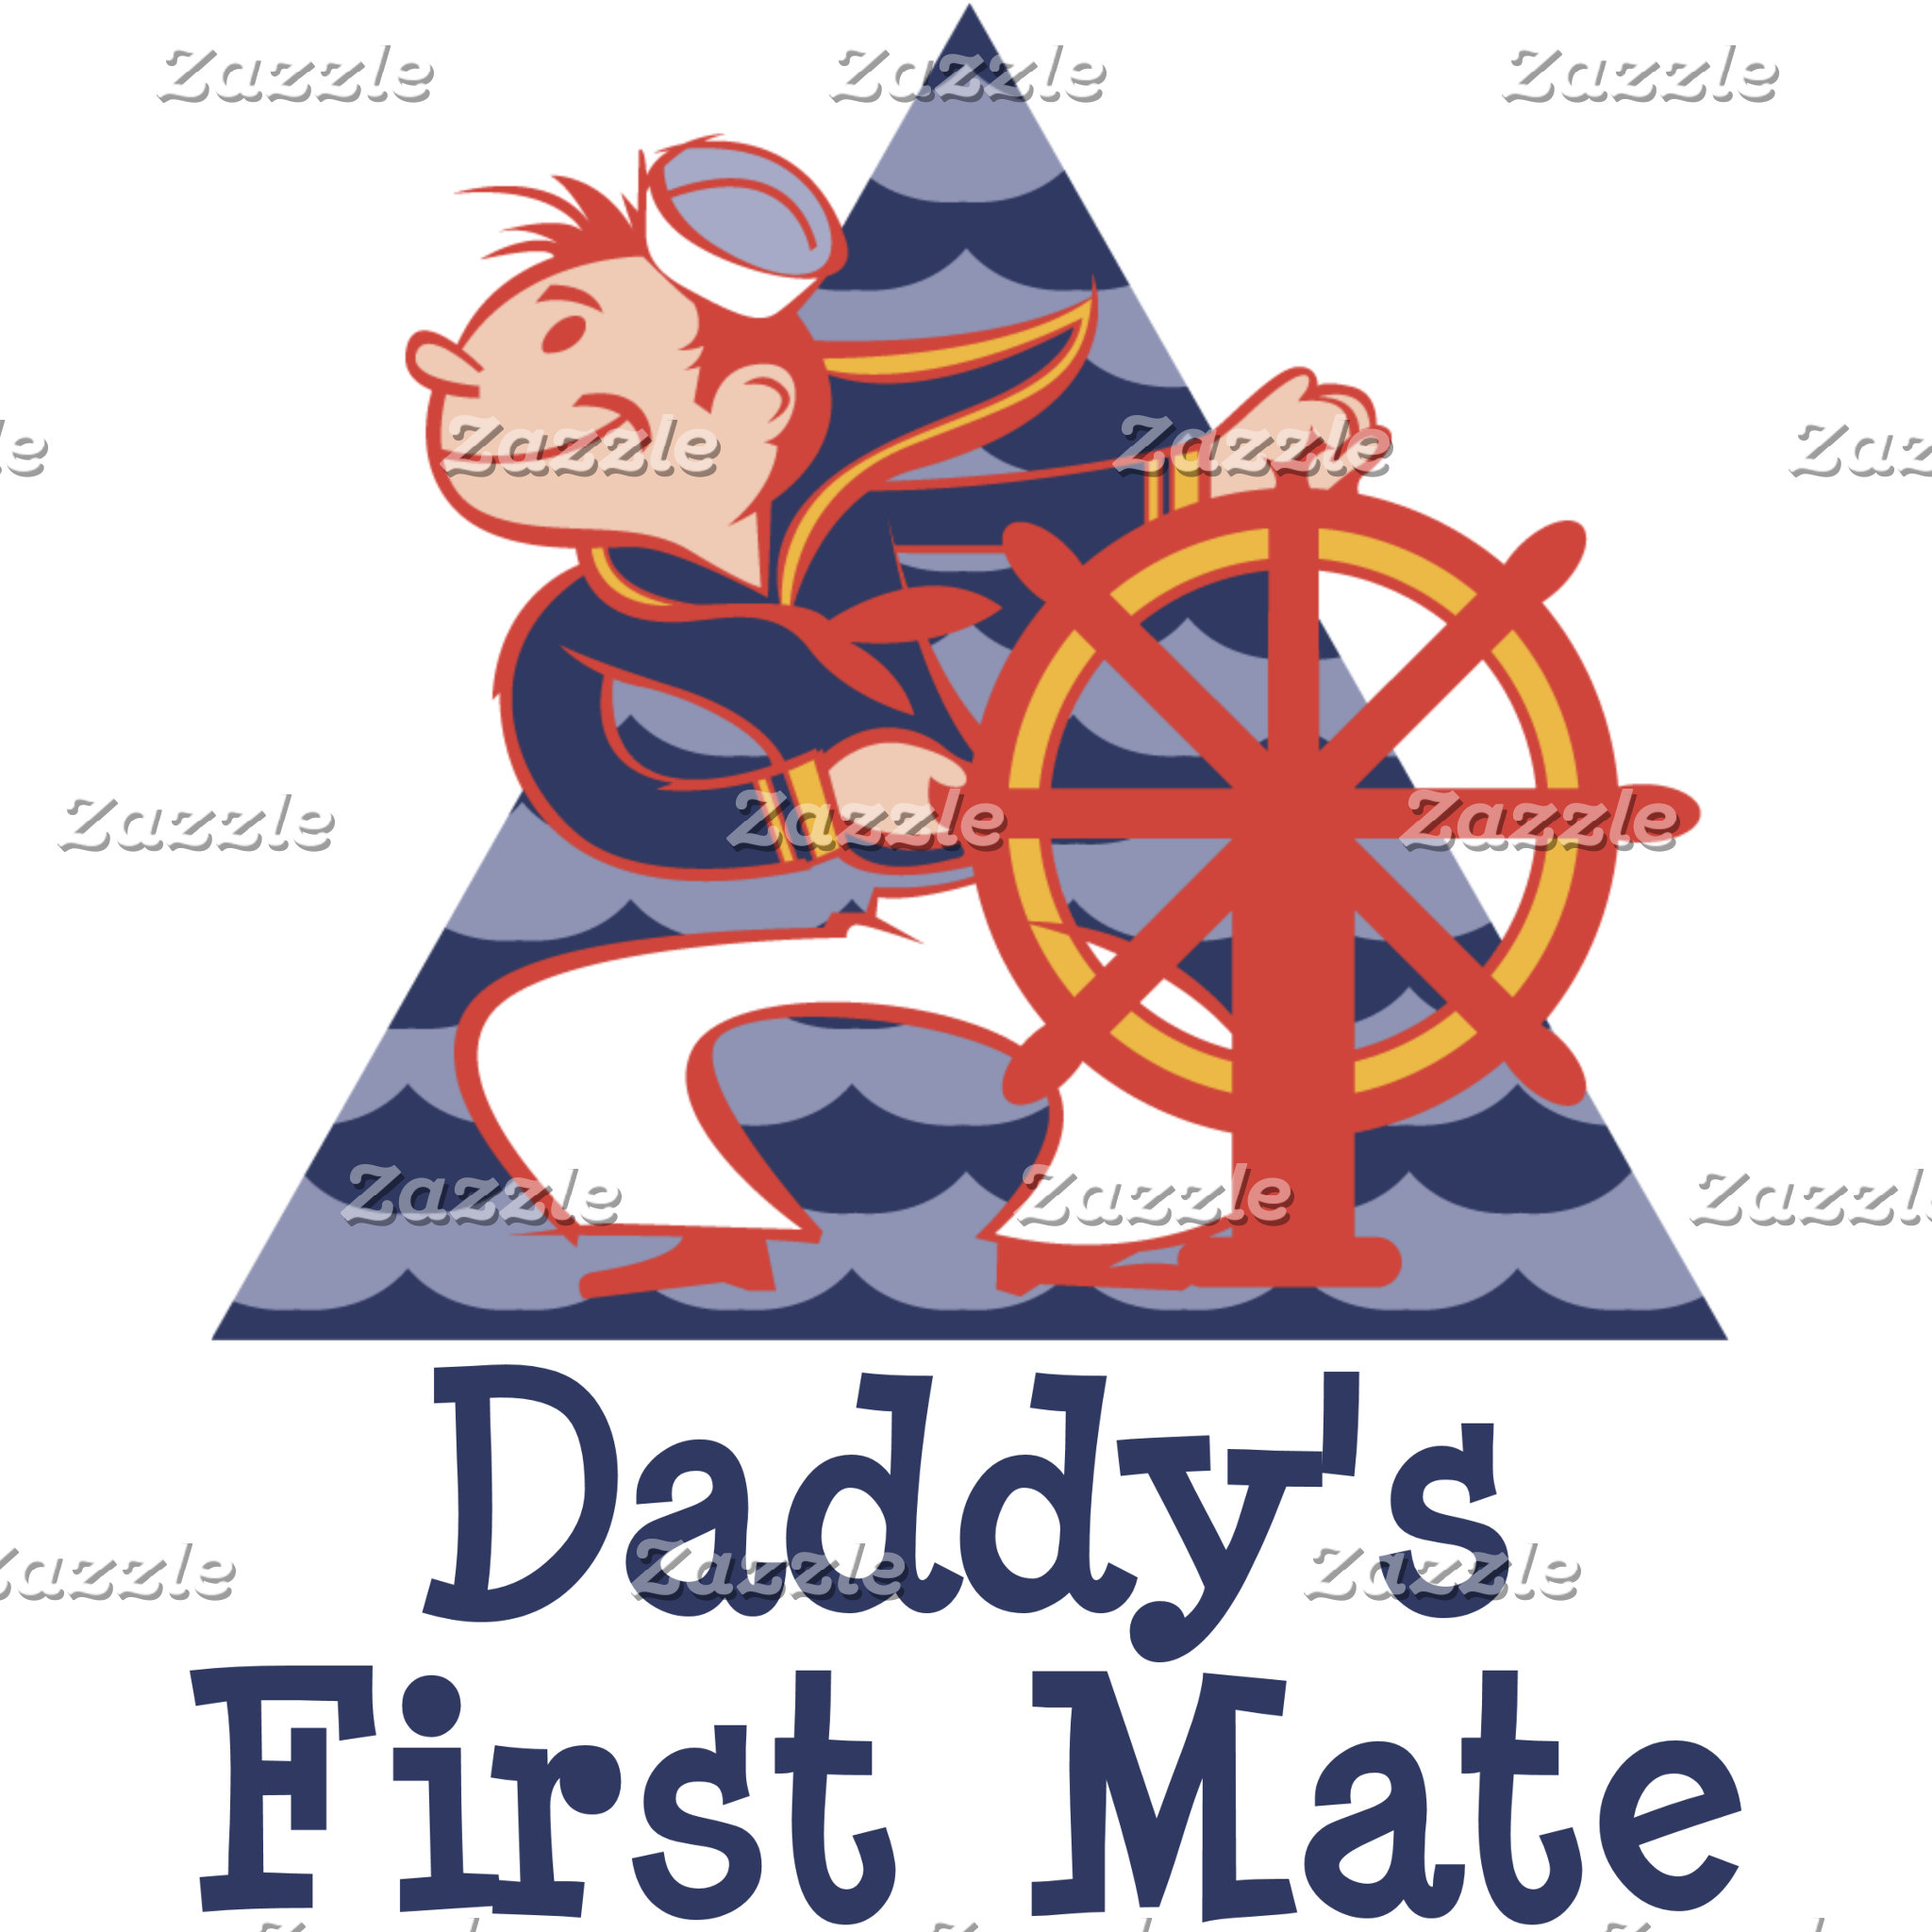 Daddy's First Mate Sailor